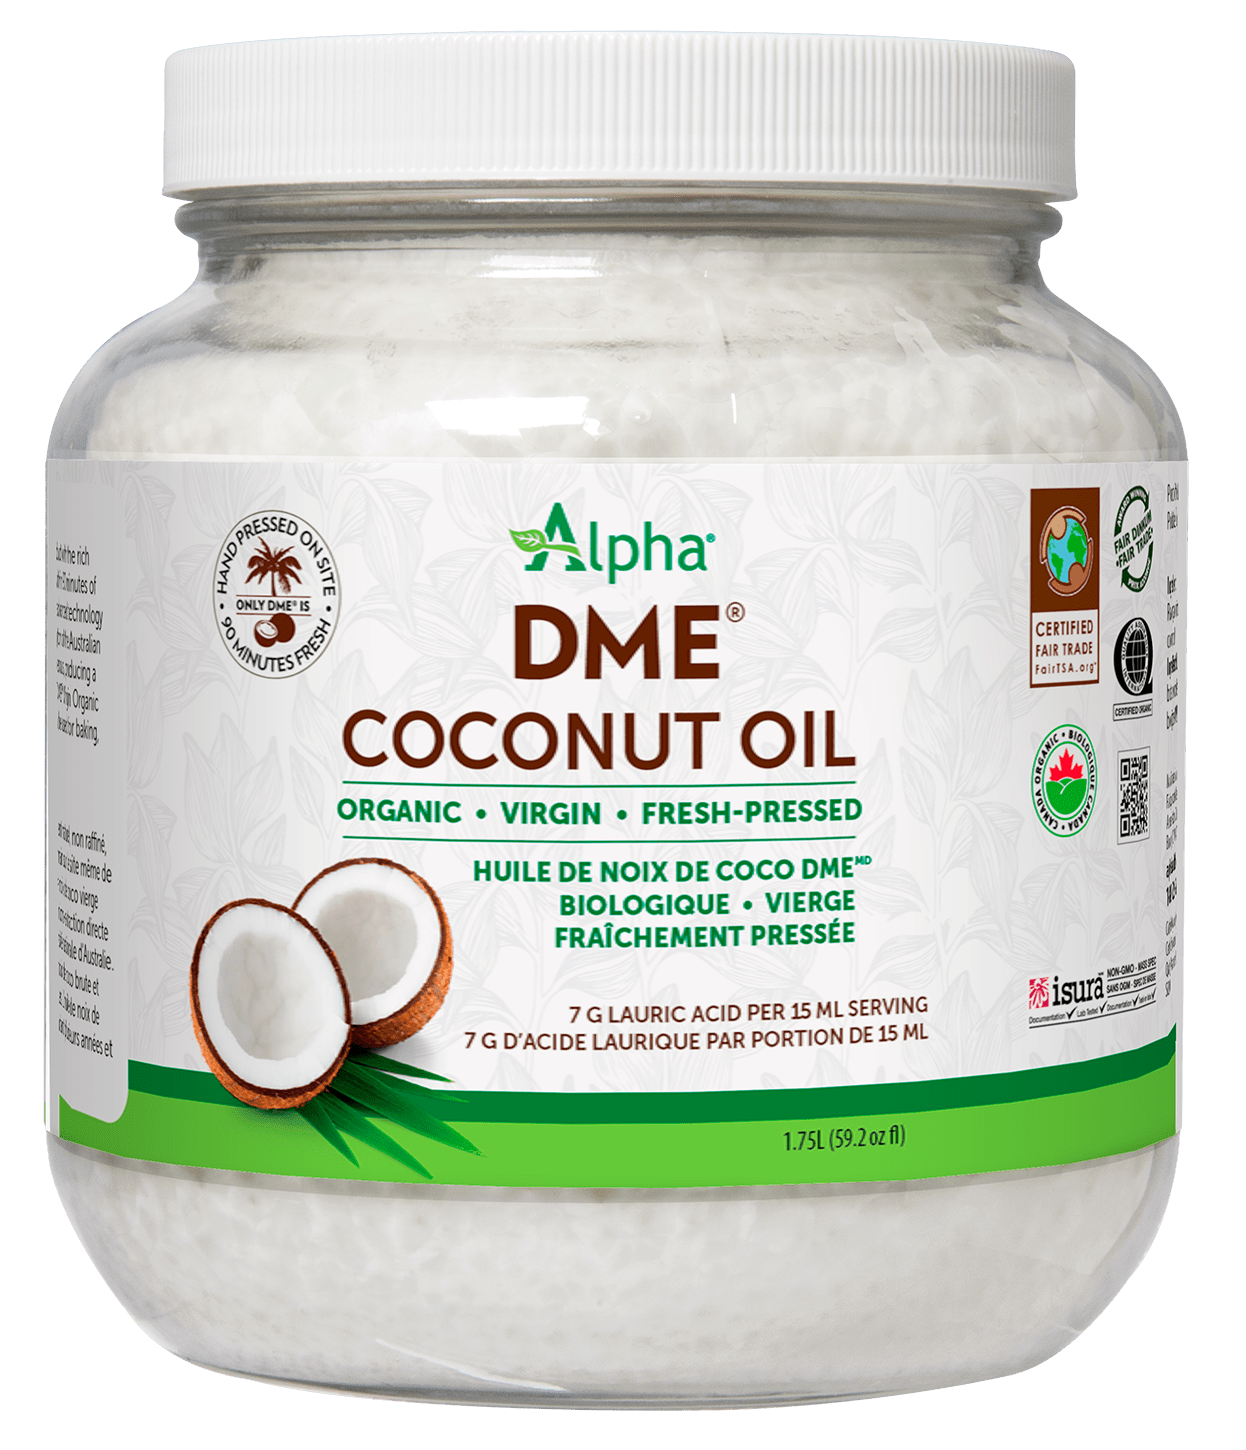 Alpha Health Products Alpha - DME Virgin Coconut Oil - 1.75L